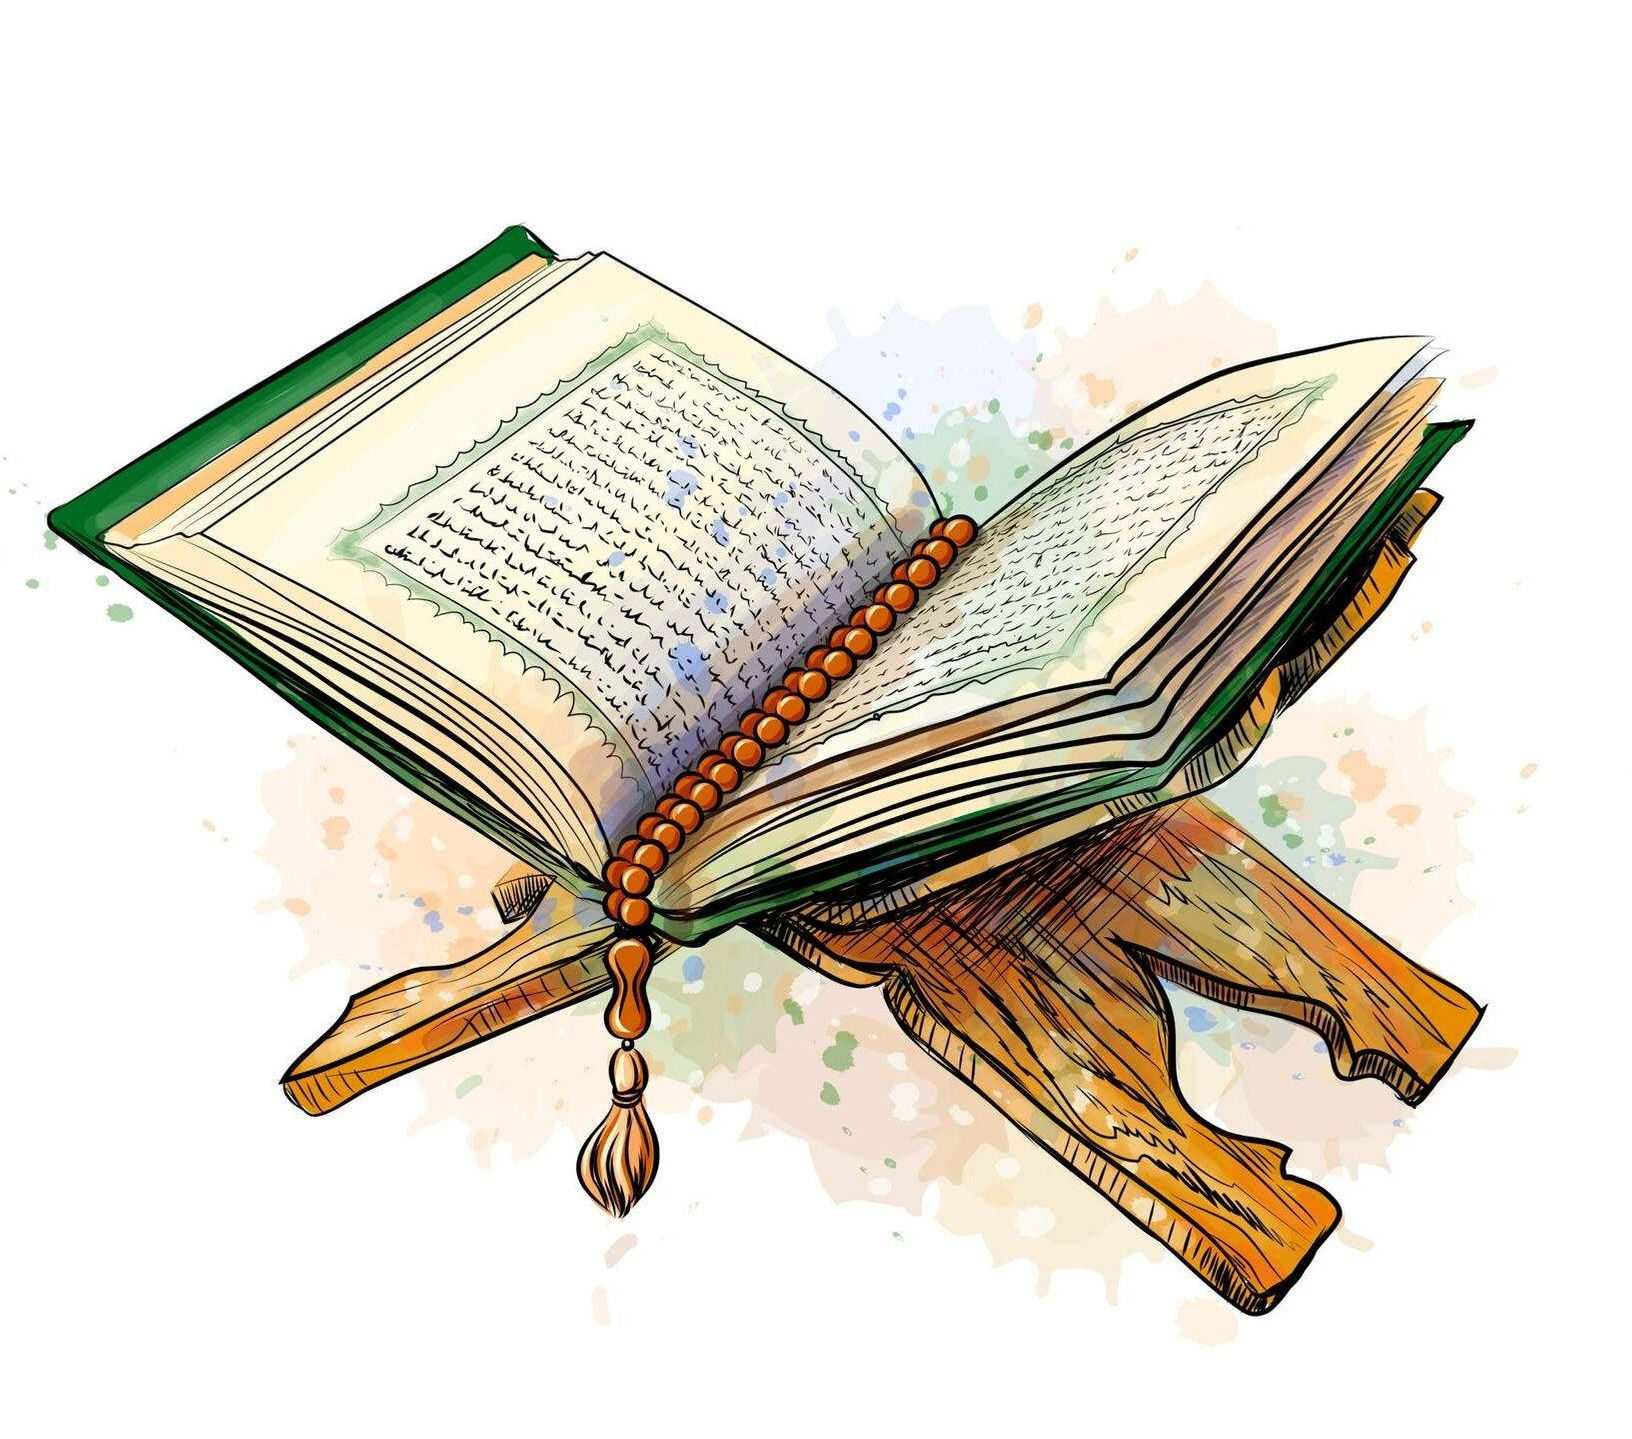 Illustration of open Quran on a stand, Rewire, queer